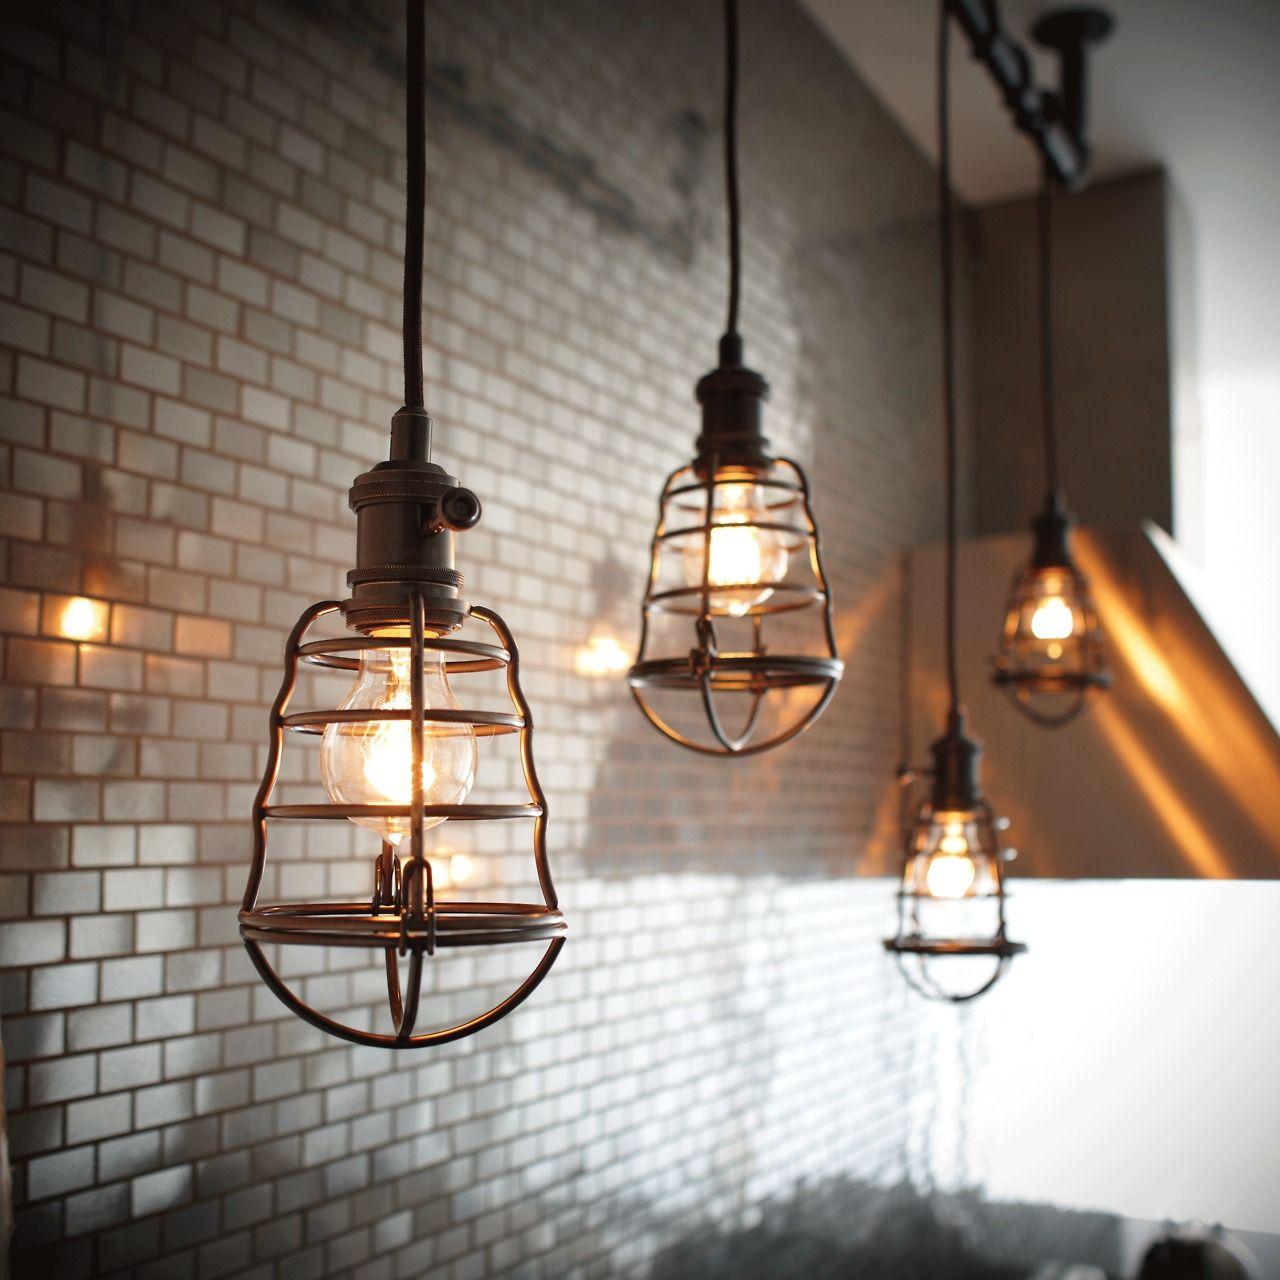 intermediate bathroom for lighting all level materials project industrial prepare light fixtures diy the